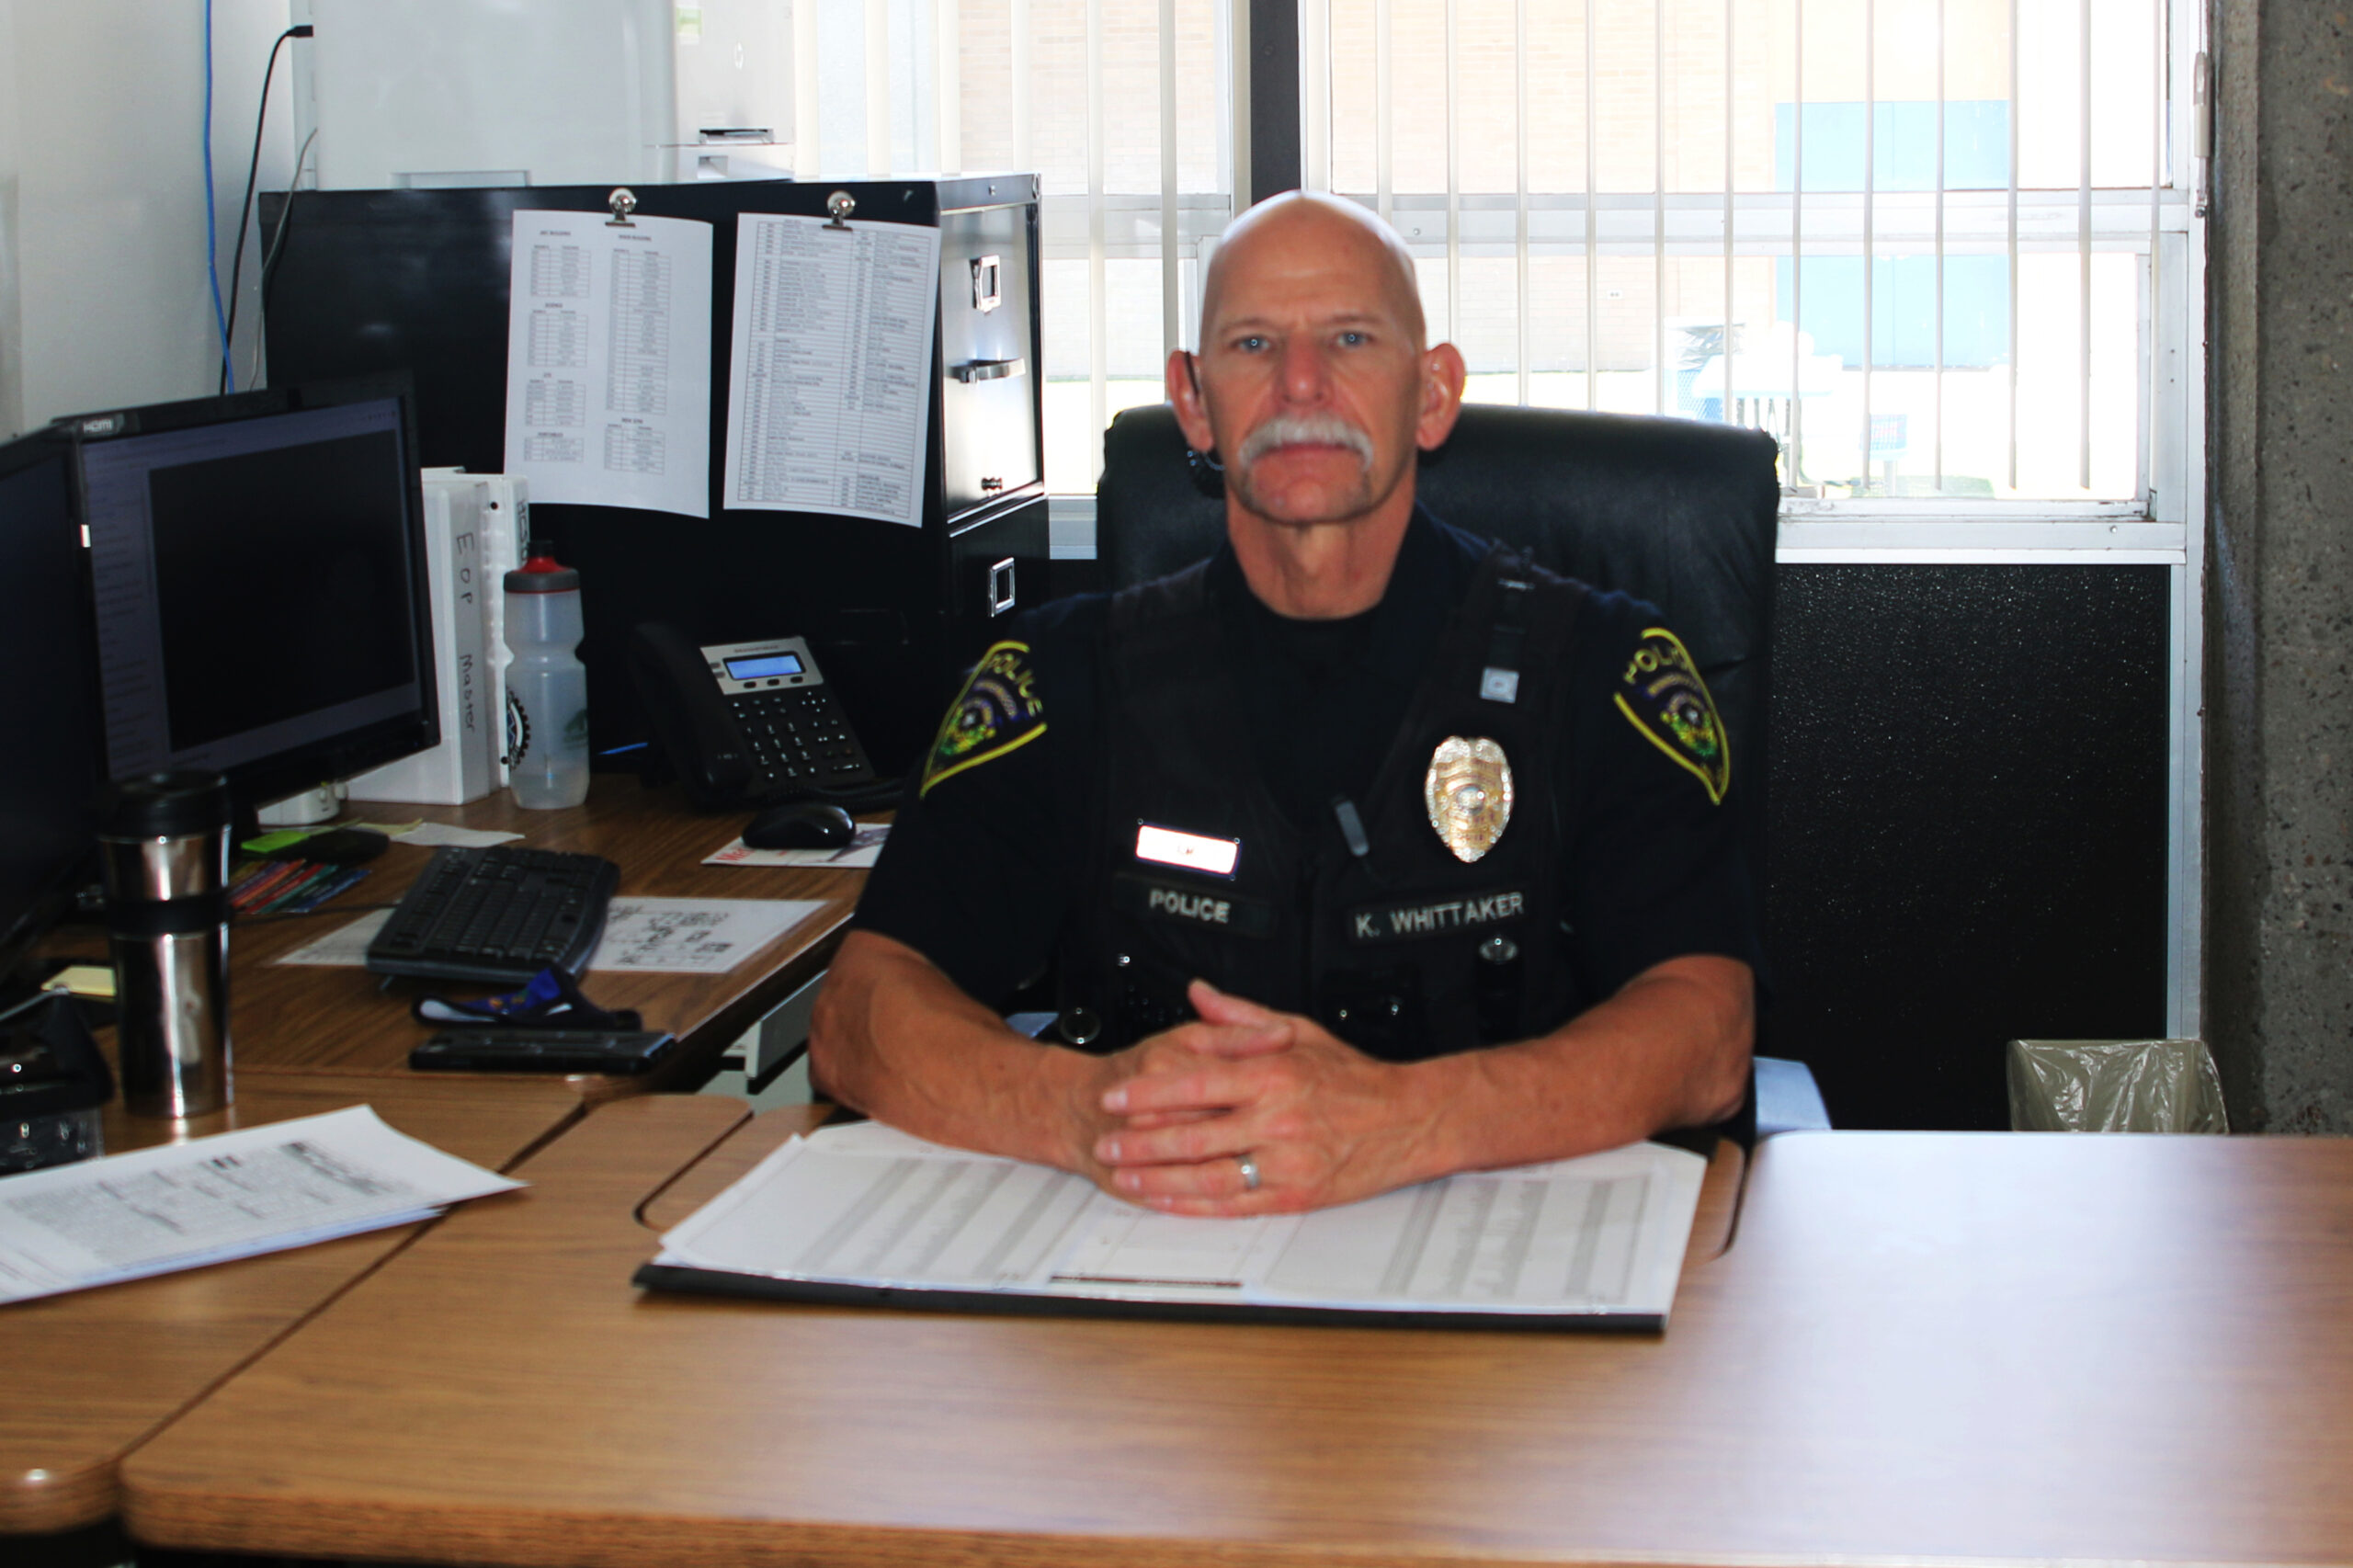 Get to know School Resource Officer Whittaker